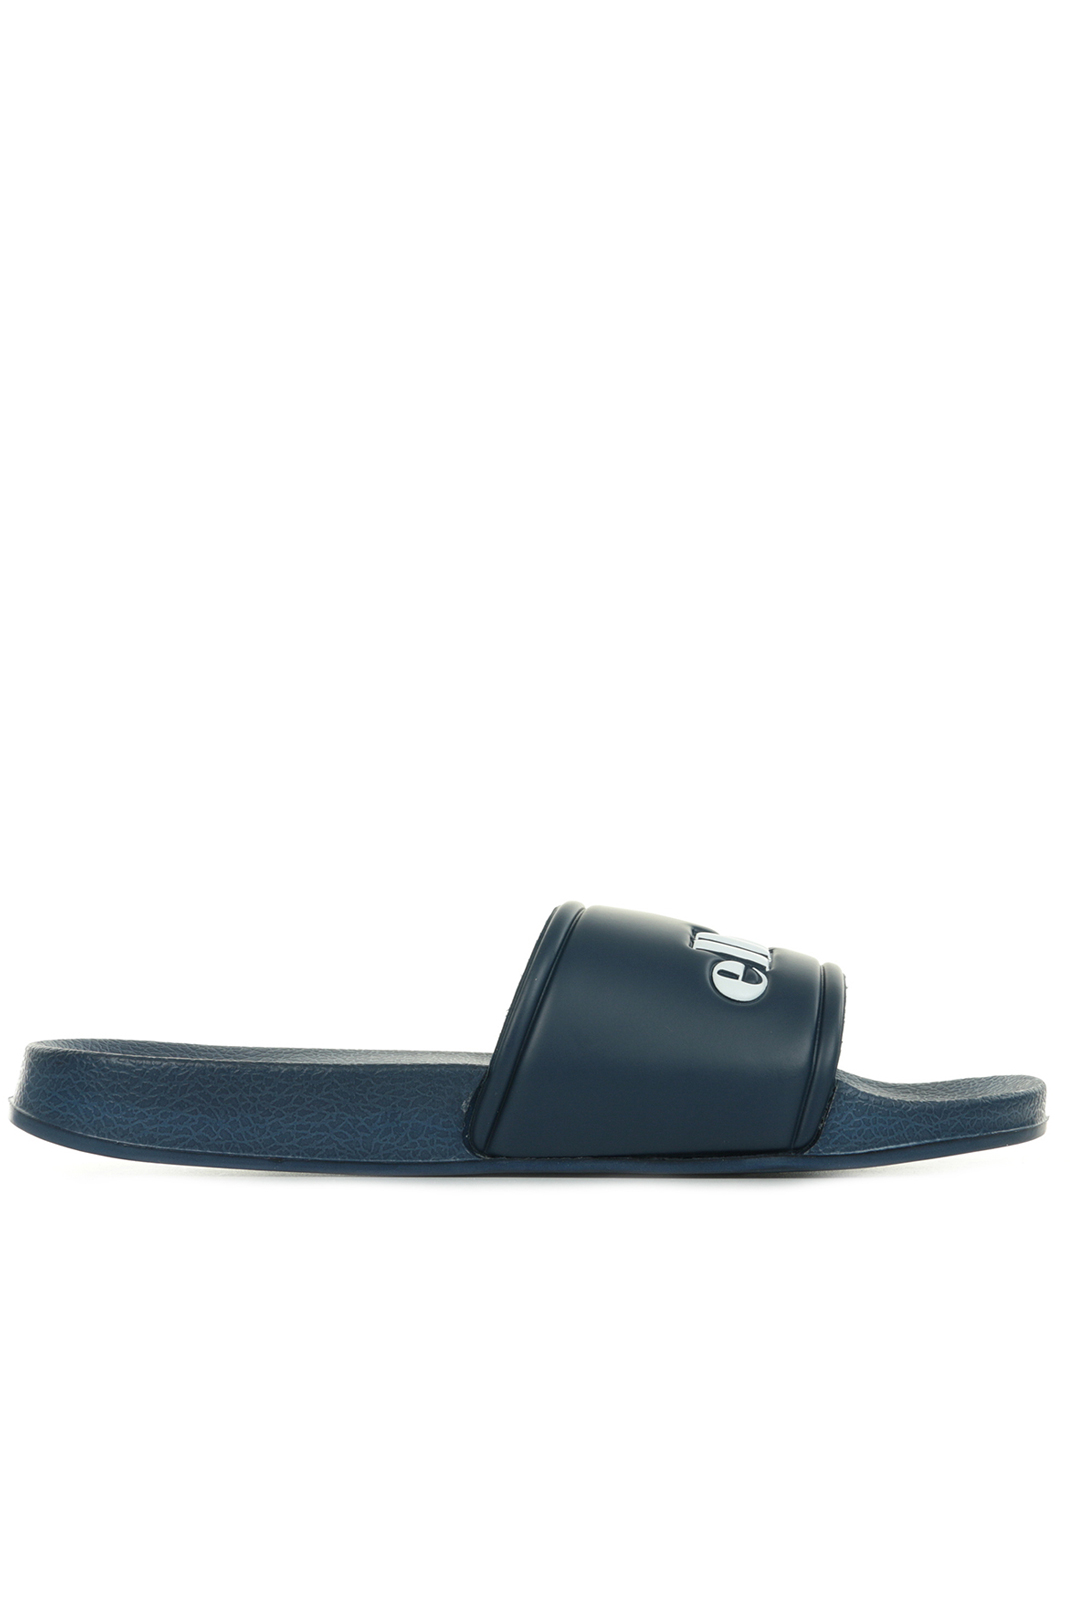 Tongs / Mules  Ellesse DUKE FULL NAVY